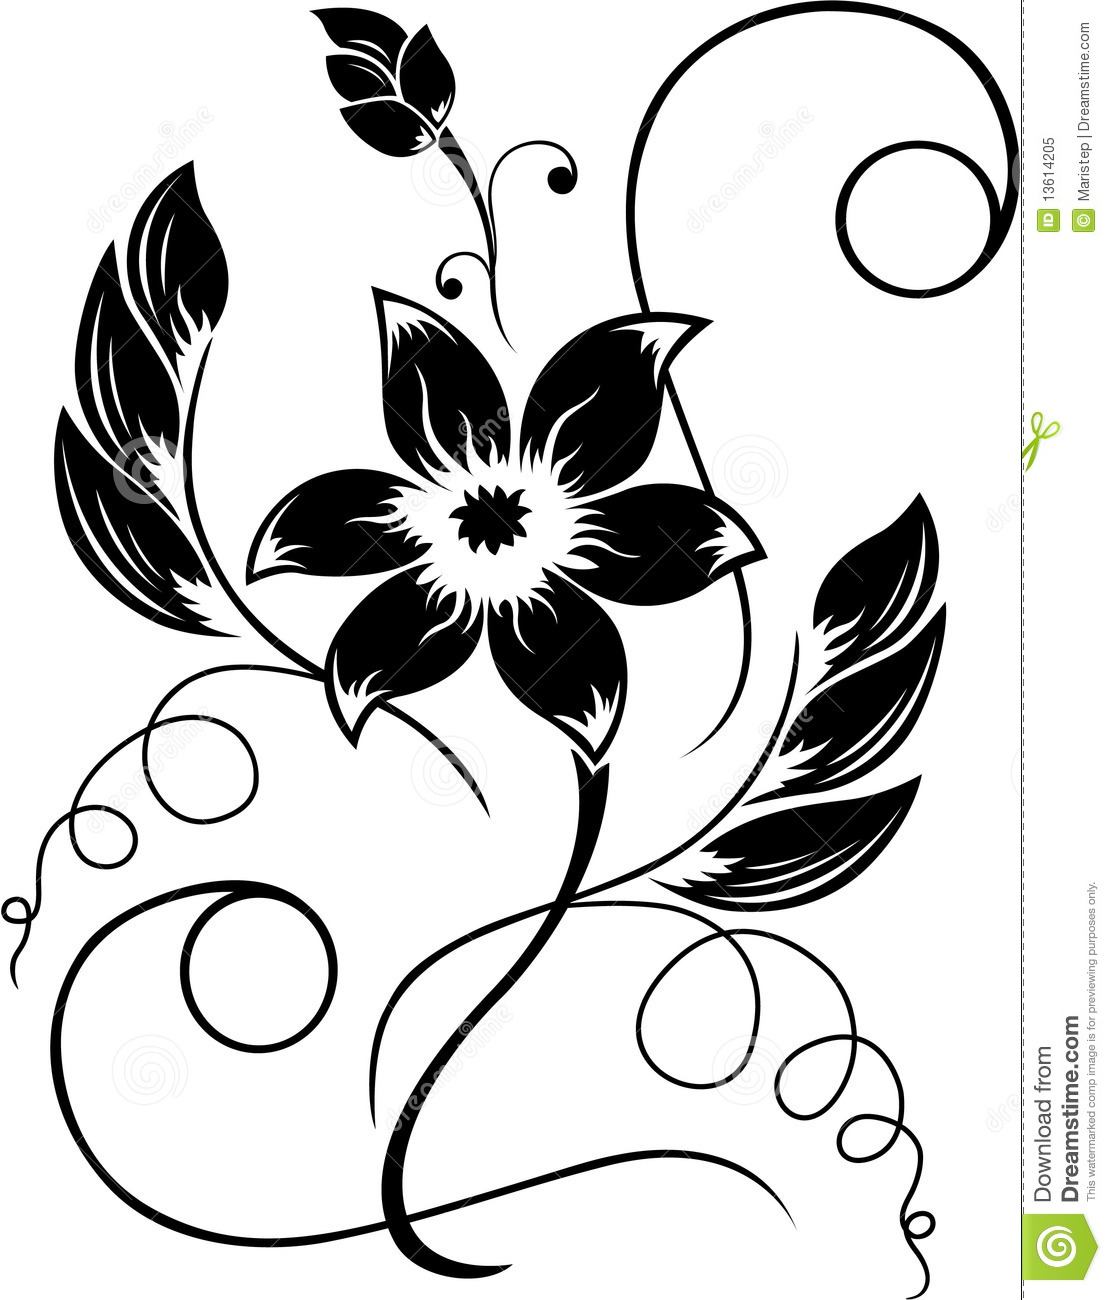 Black and white flower drawing clipart panda free clipart images black20and20white20flower20drawing thecheapjerseys Choice Image